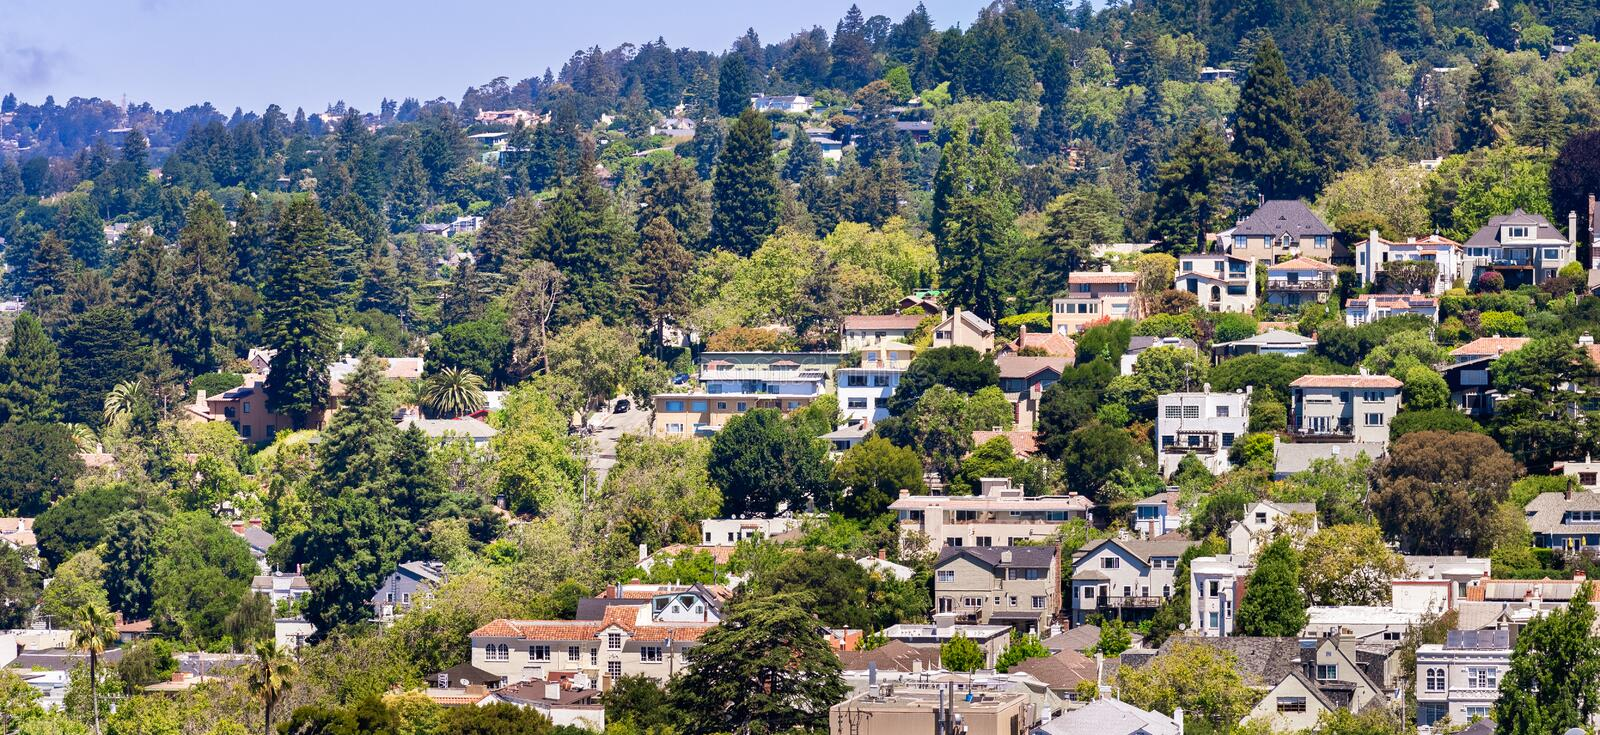 Aerial view of residential neighborhood built on a hill, Berkeley, San Francisco bay, California royalty free stock image